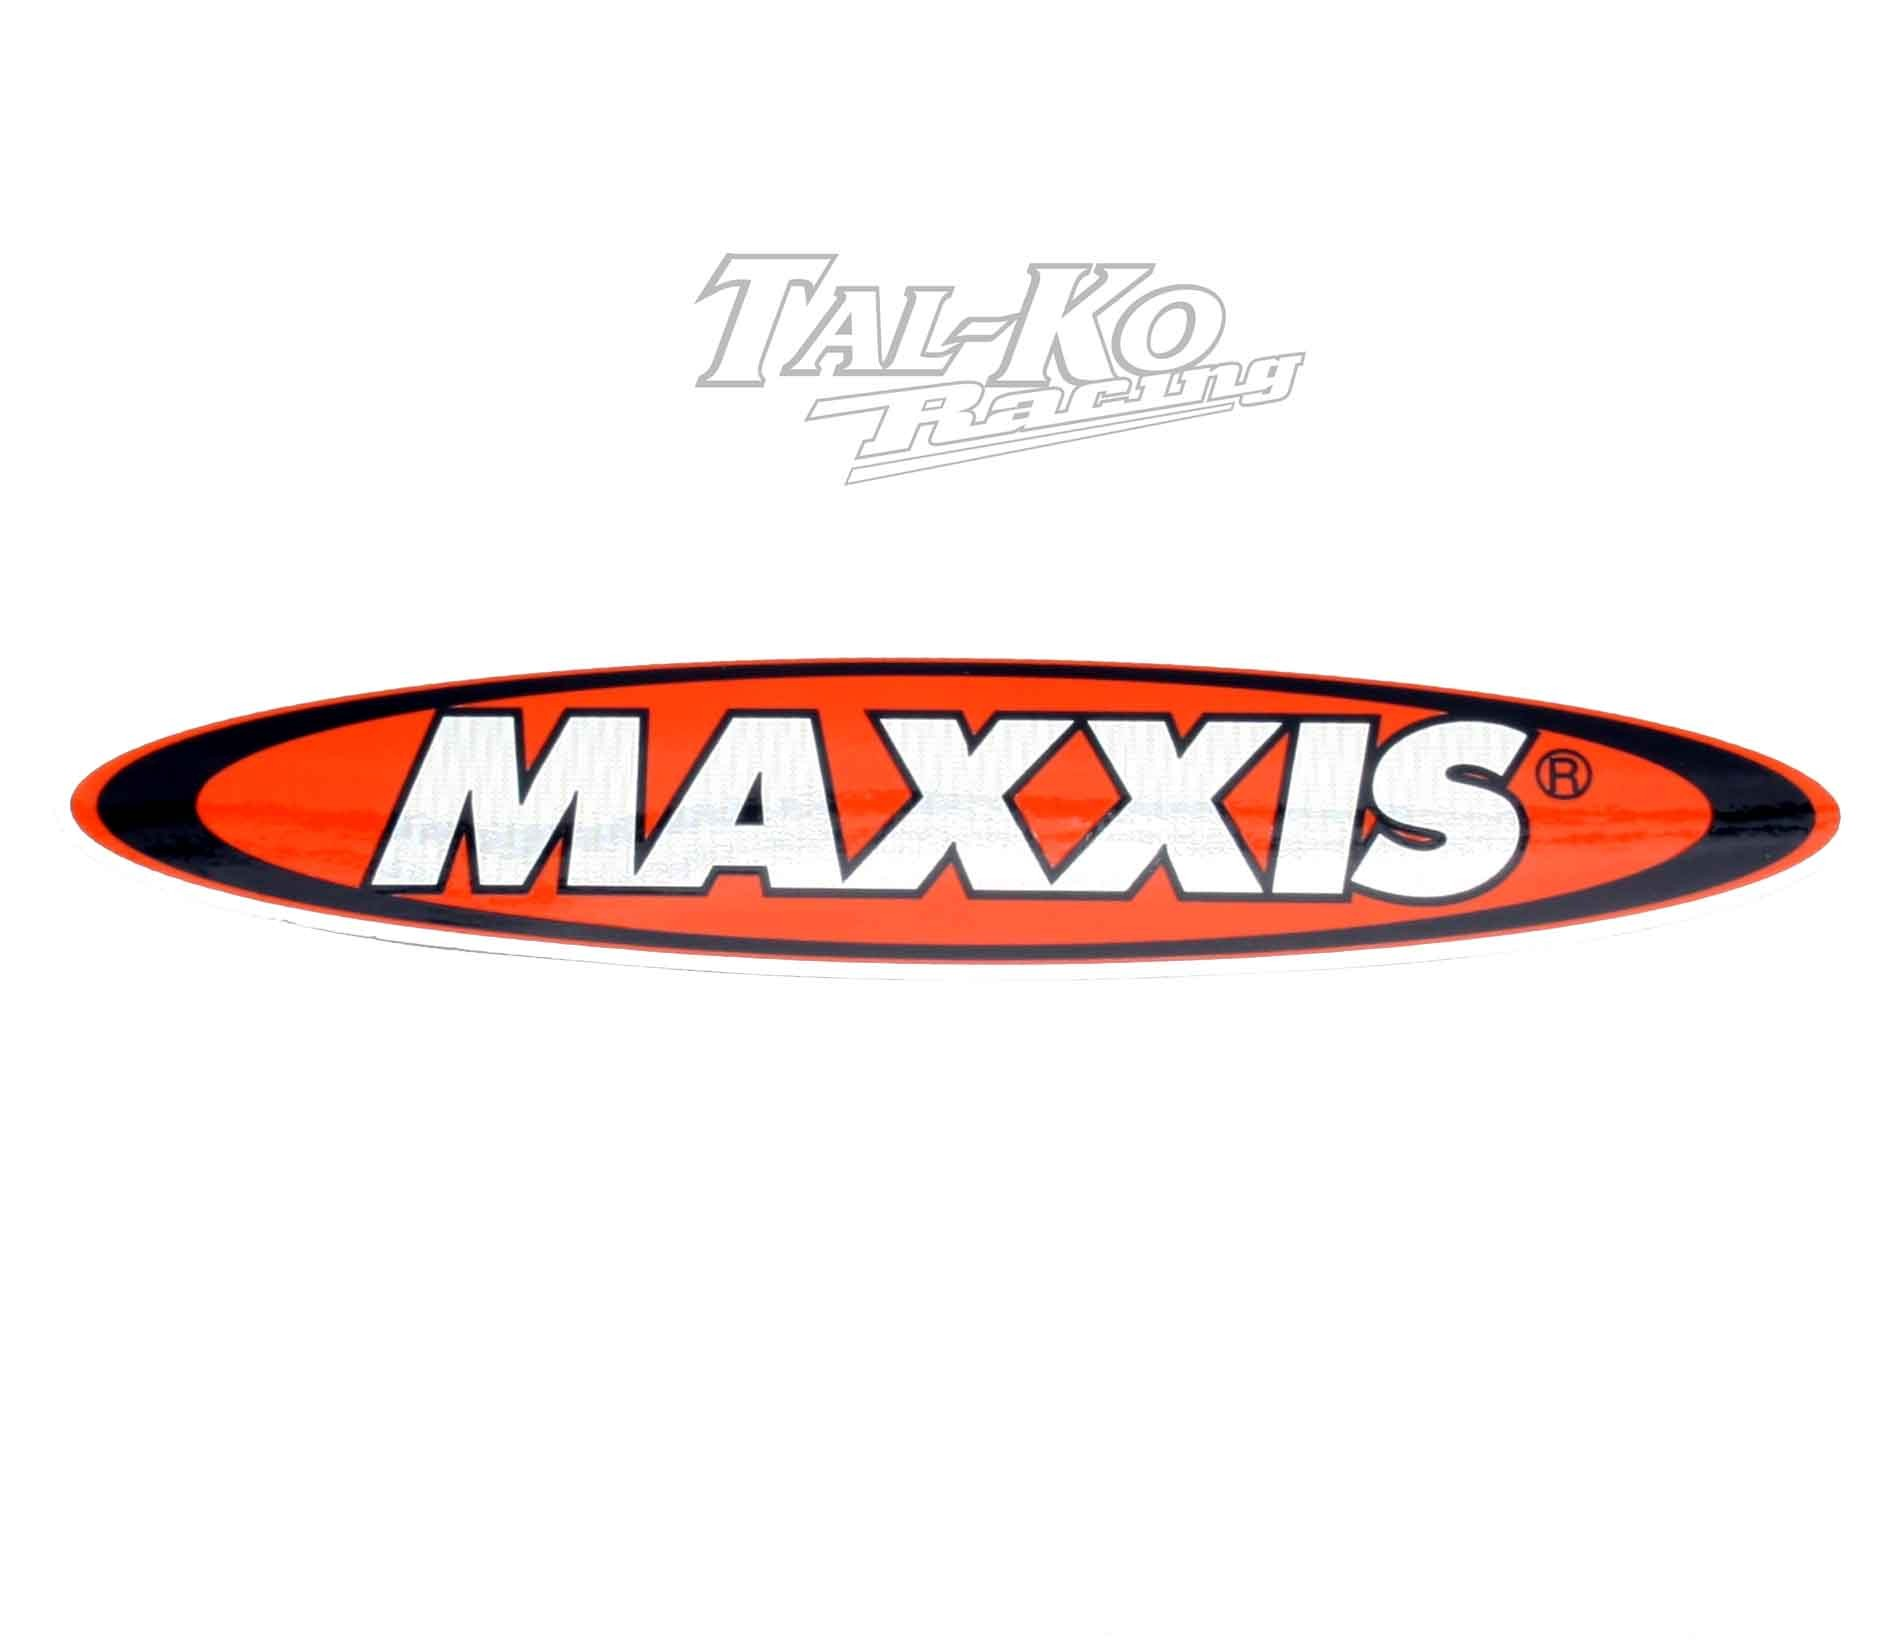 MAXXIS TYRE STICKER DECAL 200 x 40